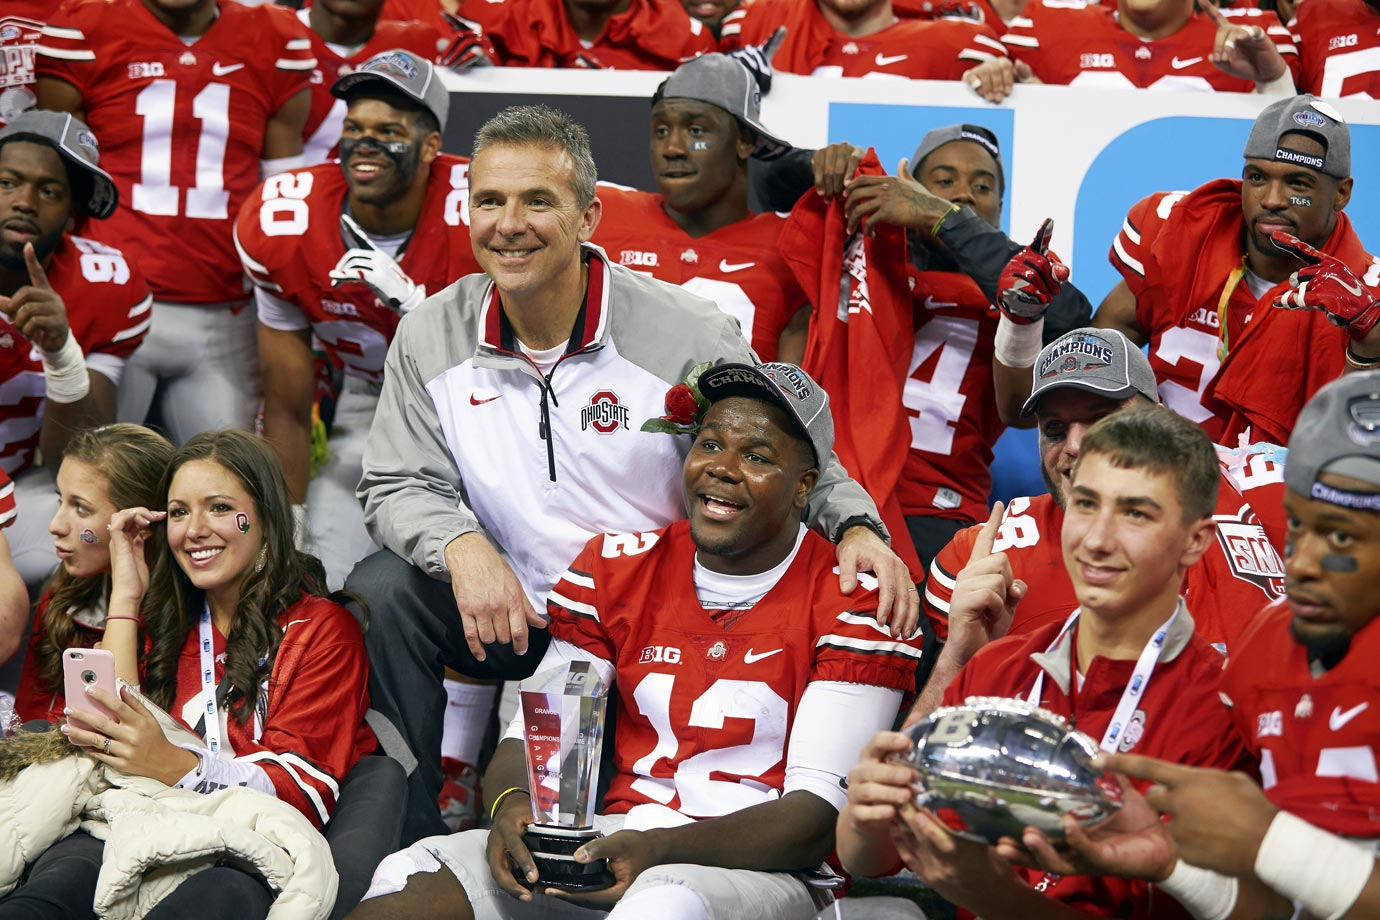 No Braxton Miller and no J.T. Barrett? No problem for the Buckeyes. Third-stringer Cardale Jones engineered an annihilation of the Badgers as Ohio State dominate every facet of the game and leapfrogged TCU while holding off Baylor to earn the No. 4 seed in the playoff.